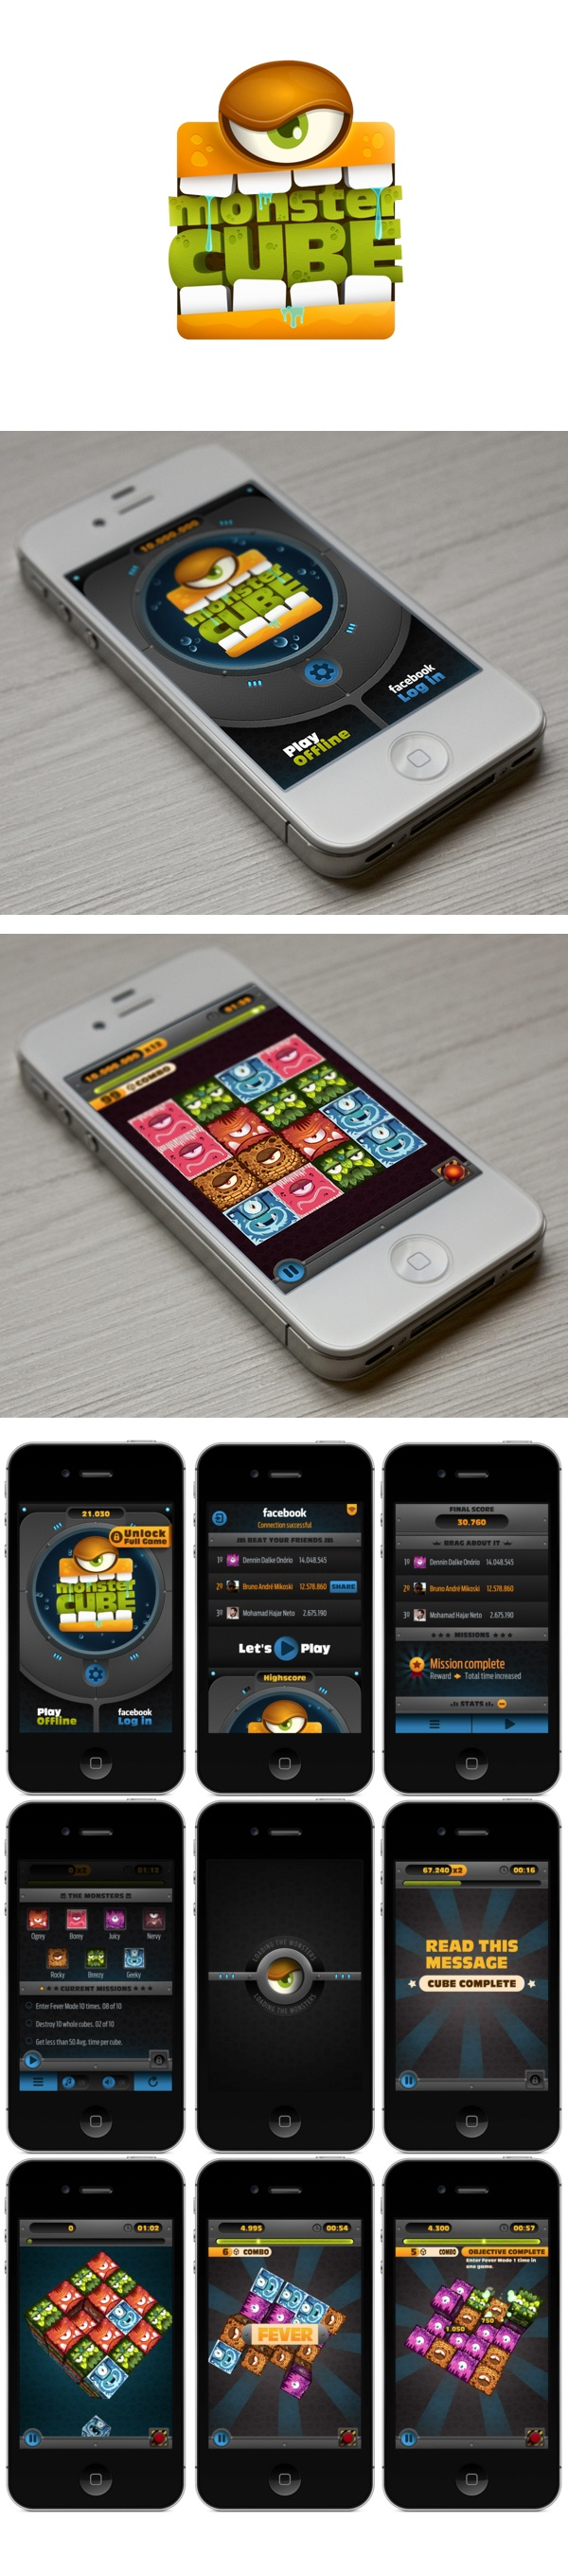 Monster Cube /game #ui #mobile